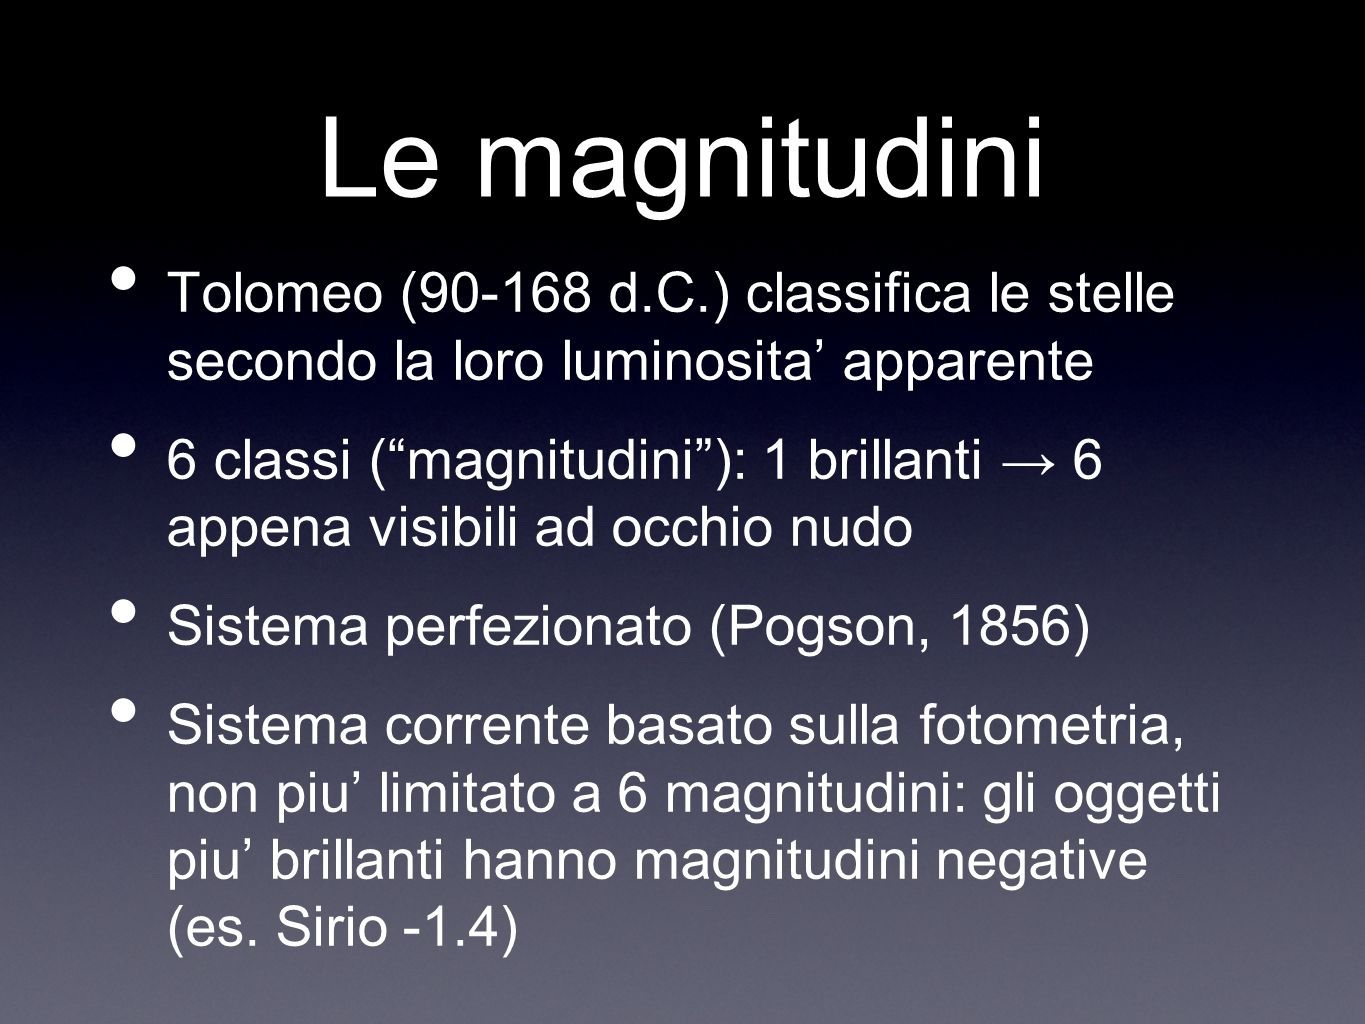 Le magnitudini Tolomeo (90-168 d.C.) classifica le stelle secondo la loro luminosita' apparente.